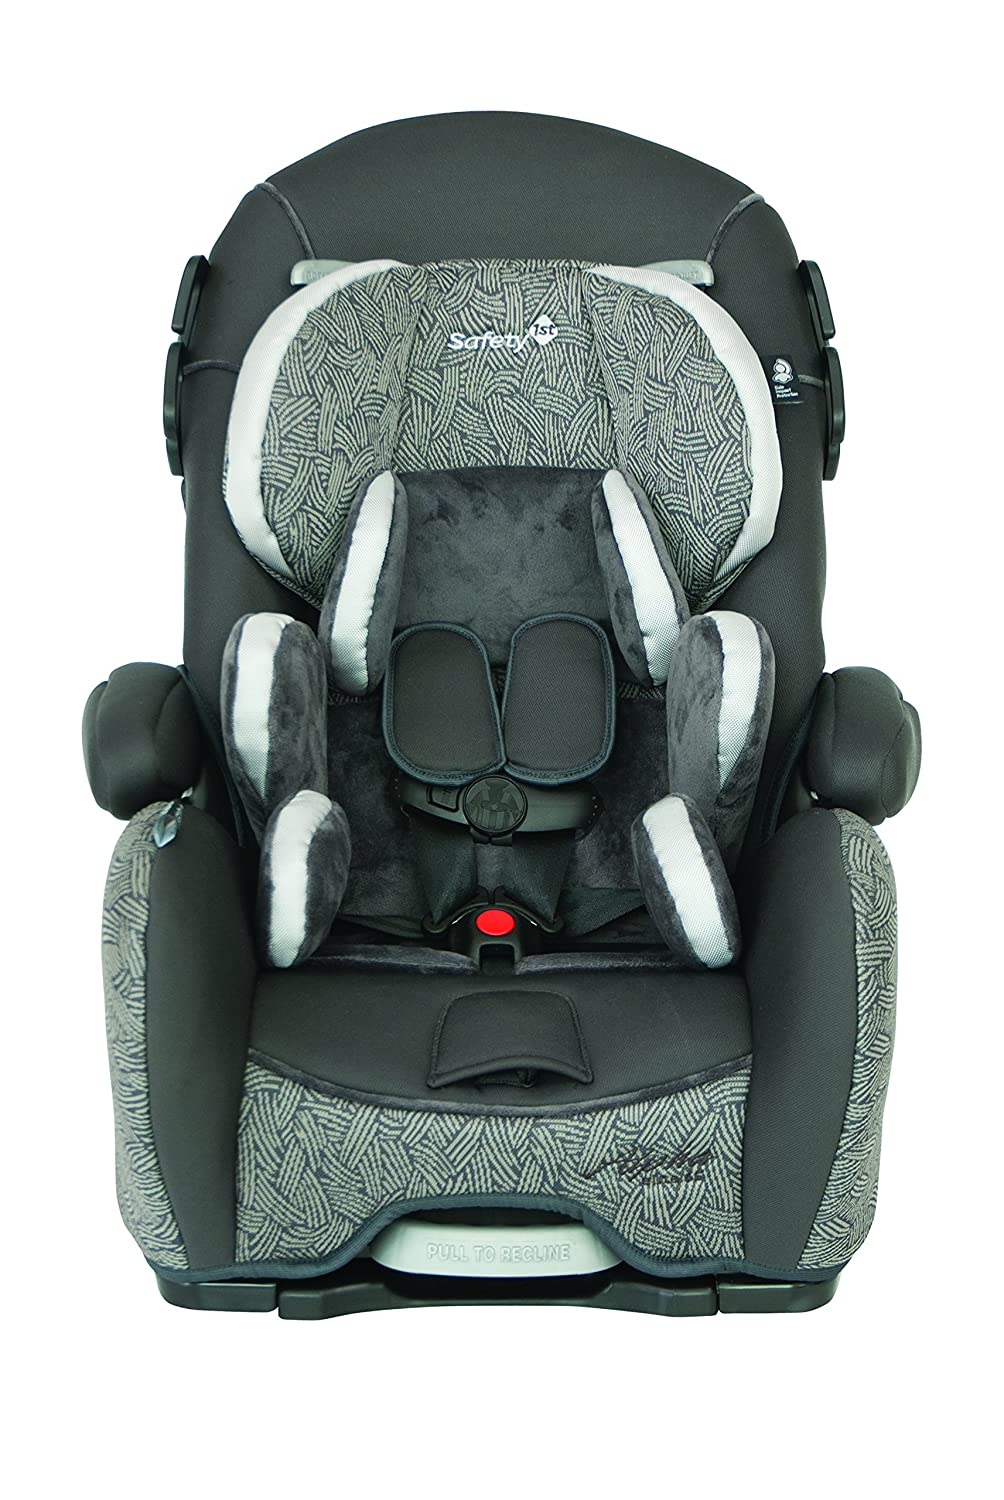 Safety 1st Alpha Omega Elite 3 in 1 Car Seat - Decatur: Amazon.ca: